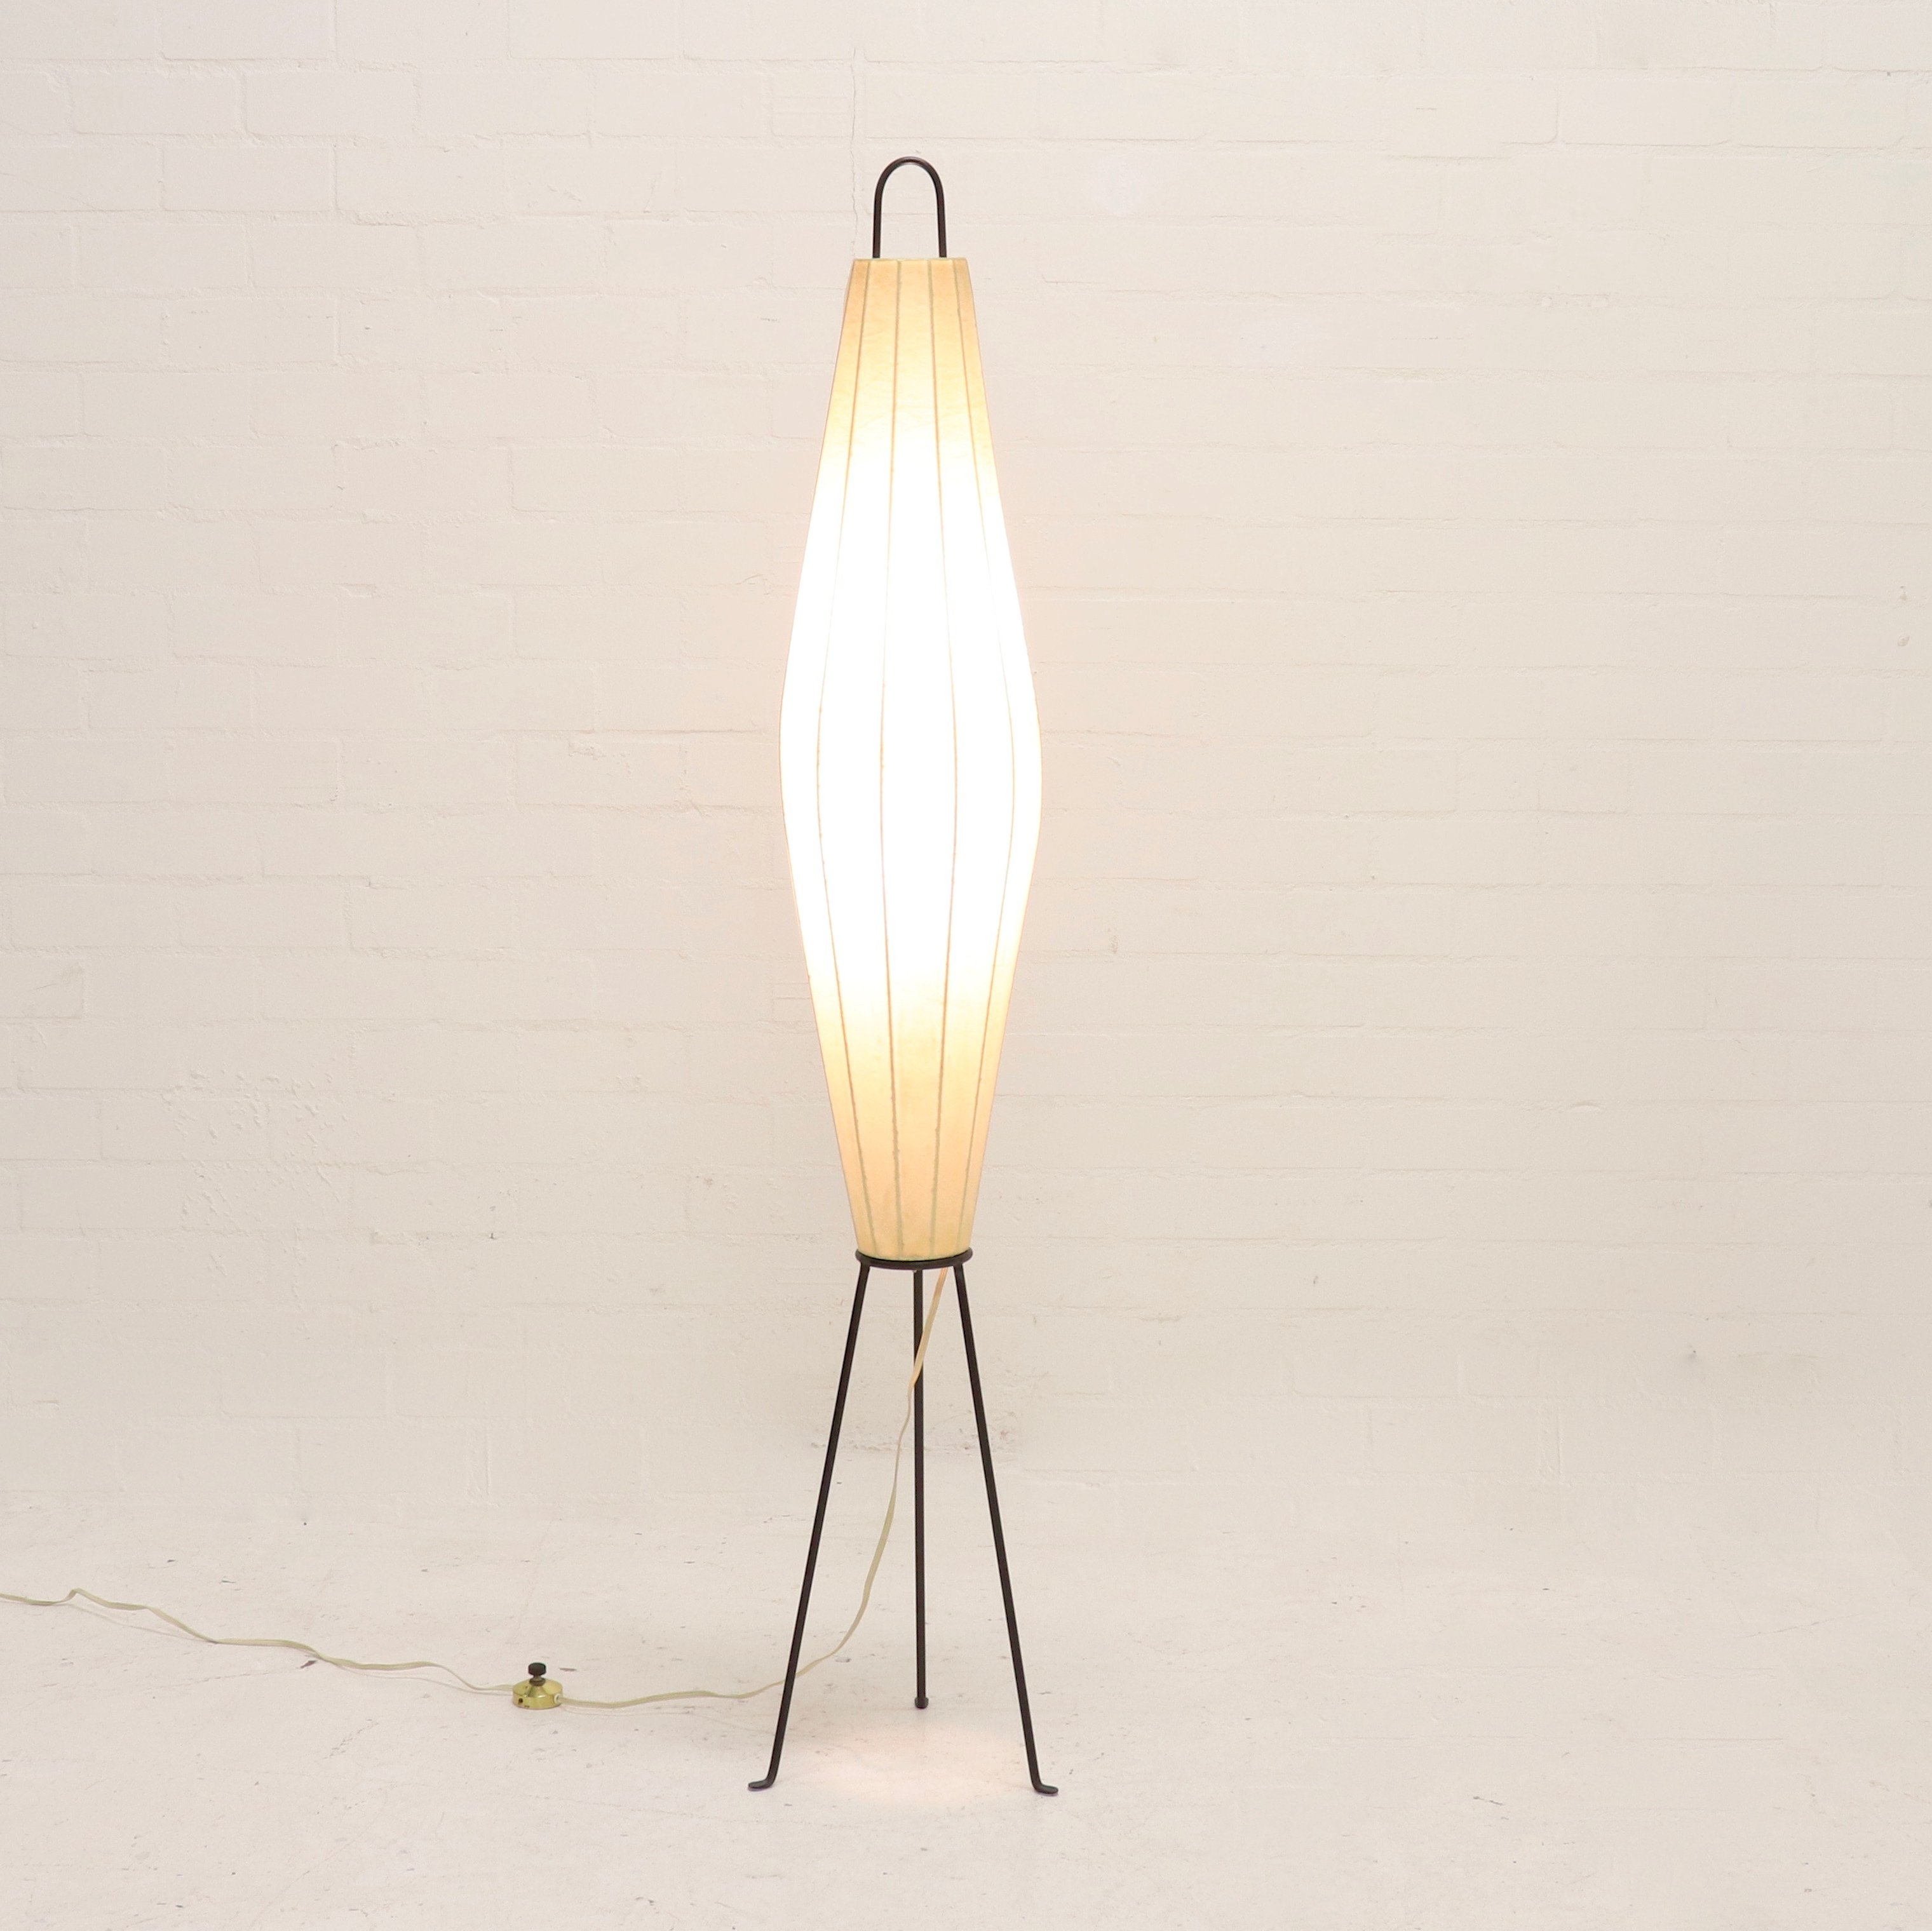 Large Artimeta Lugano Floor Lamp By H Klingele 1950s 110960